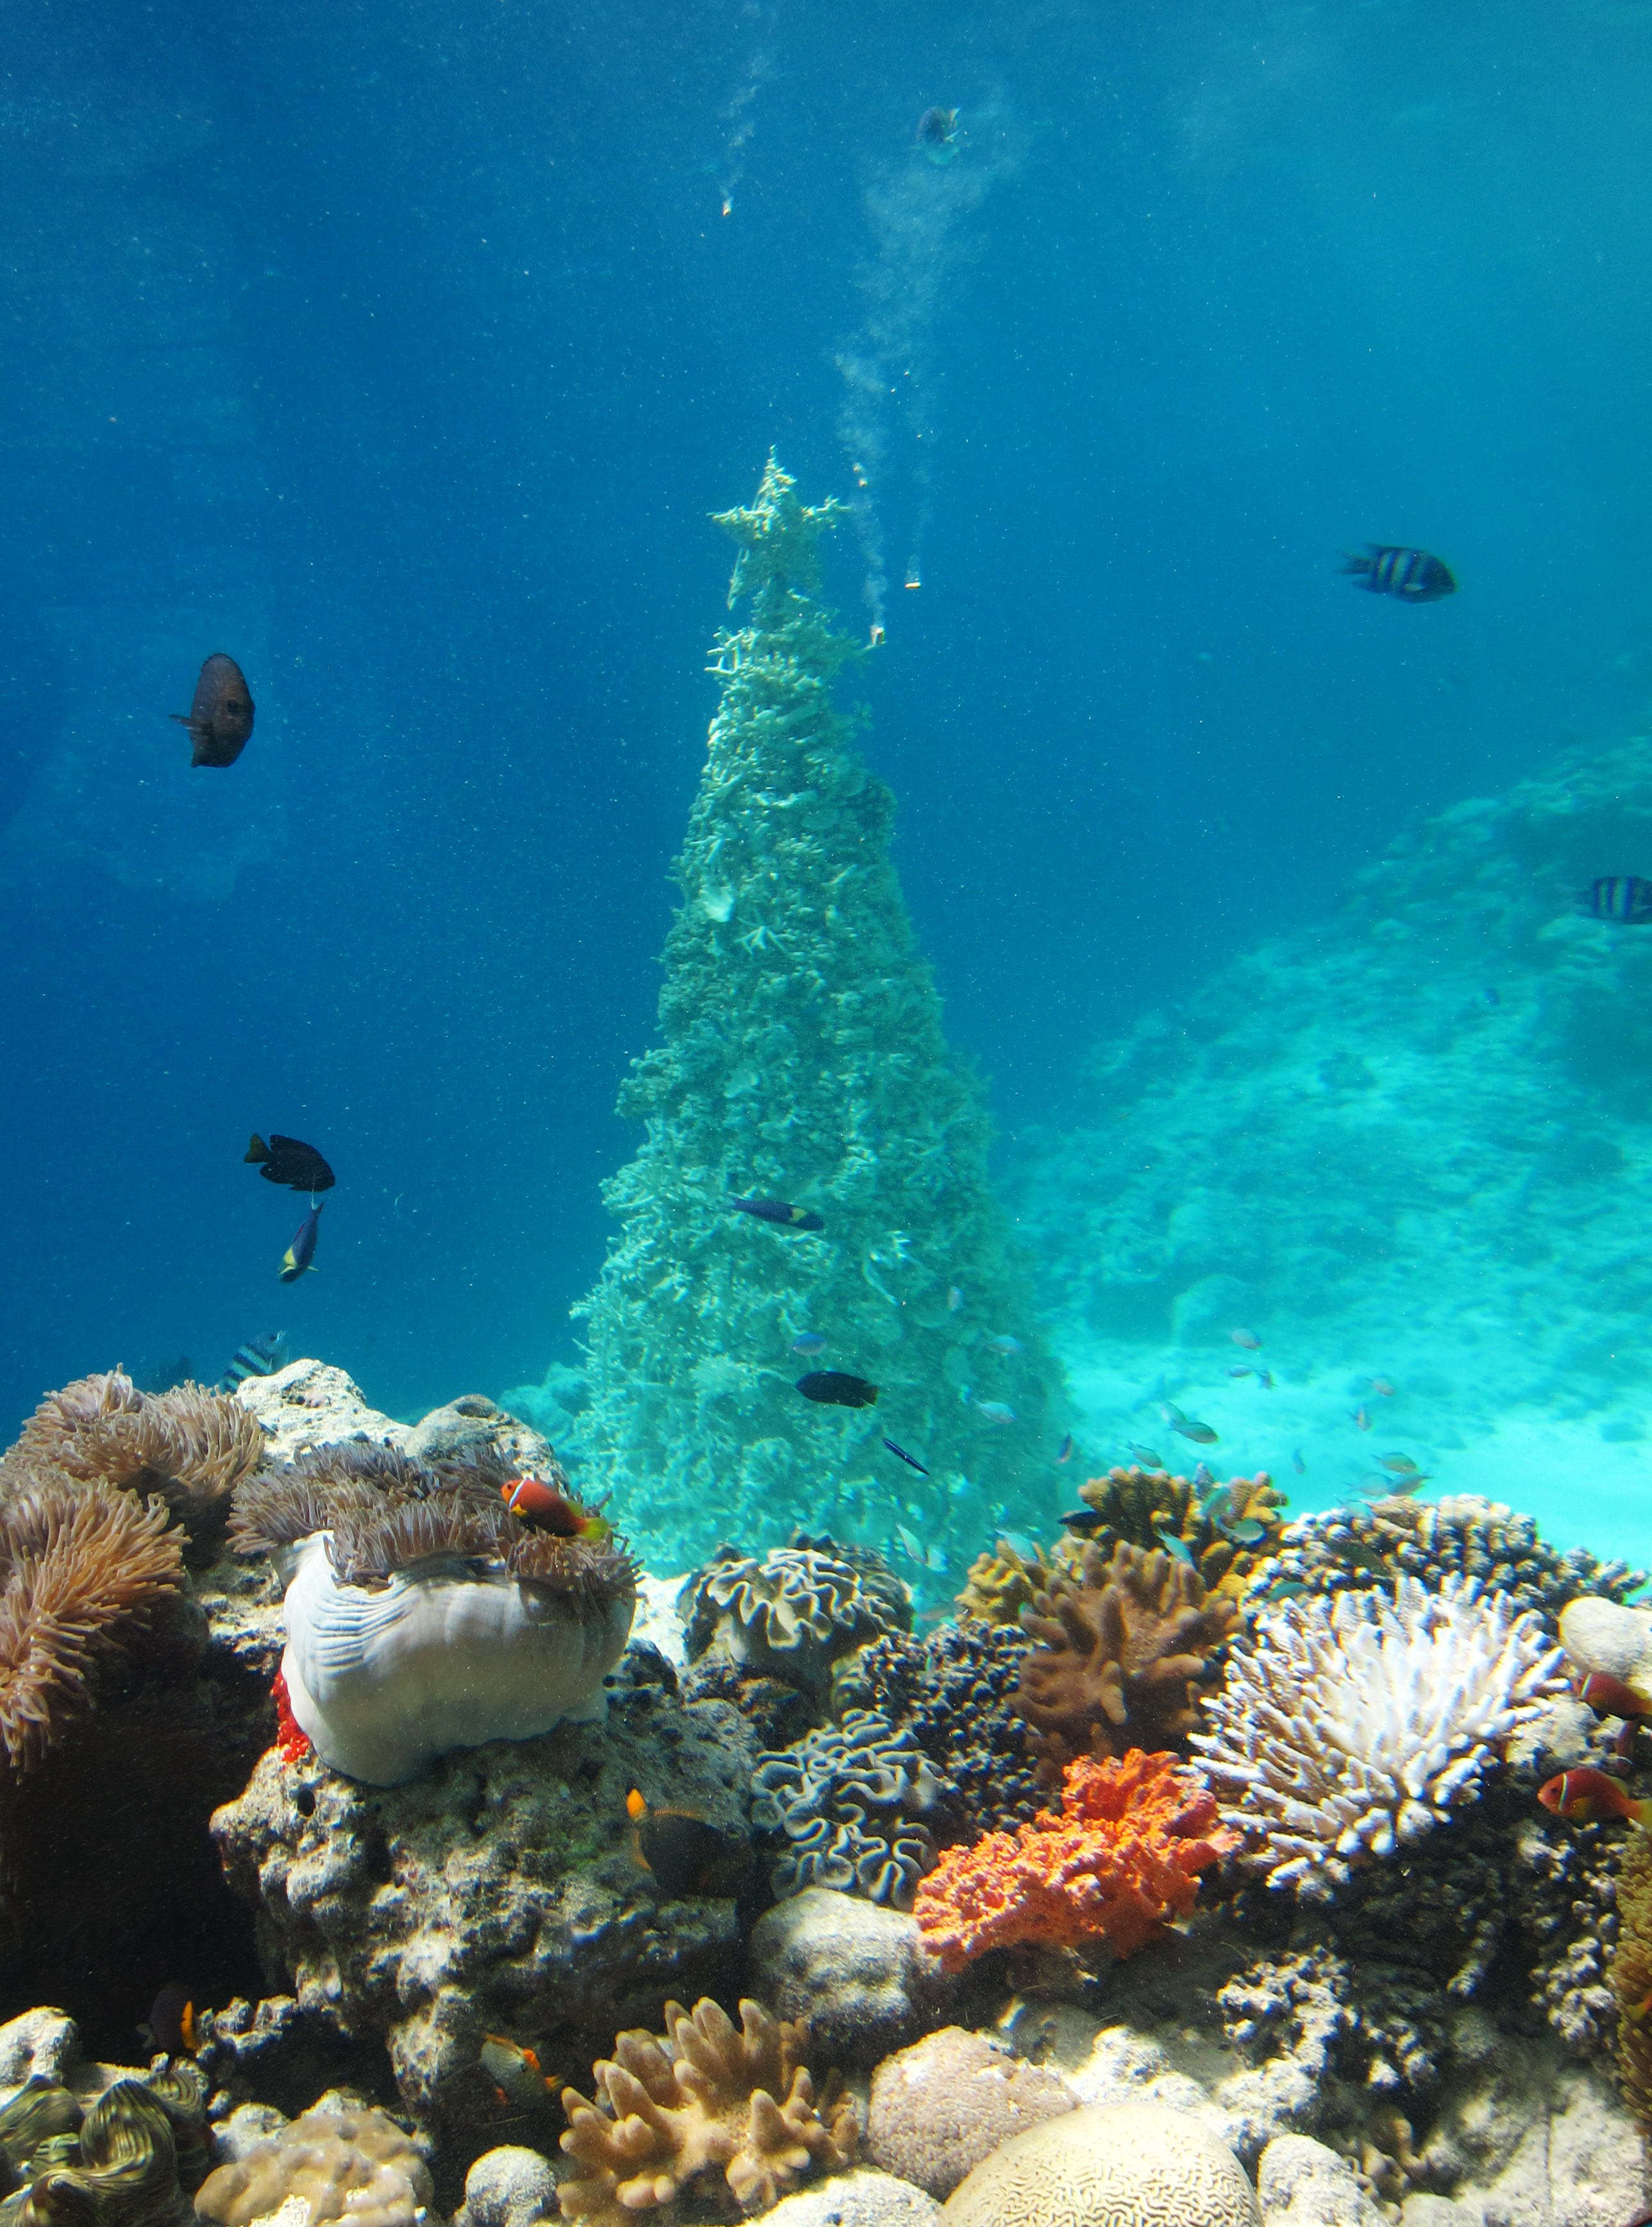 Christmas tree in the ocean made from coral